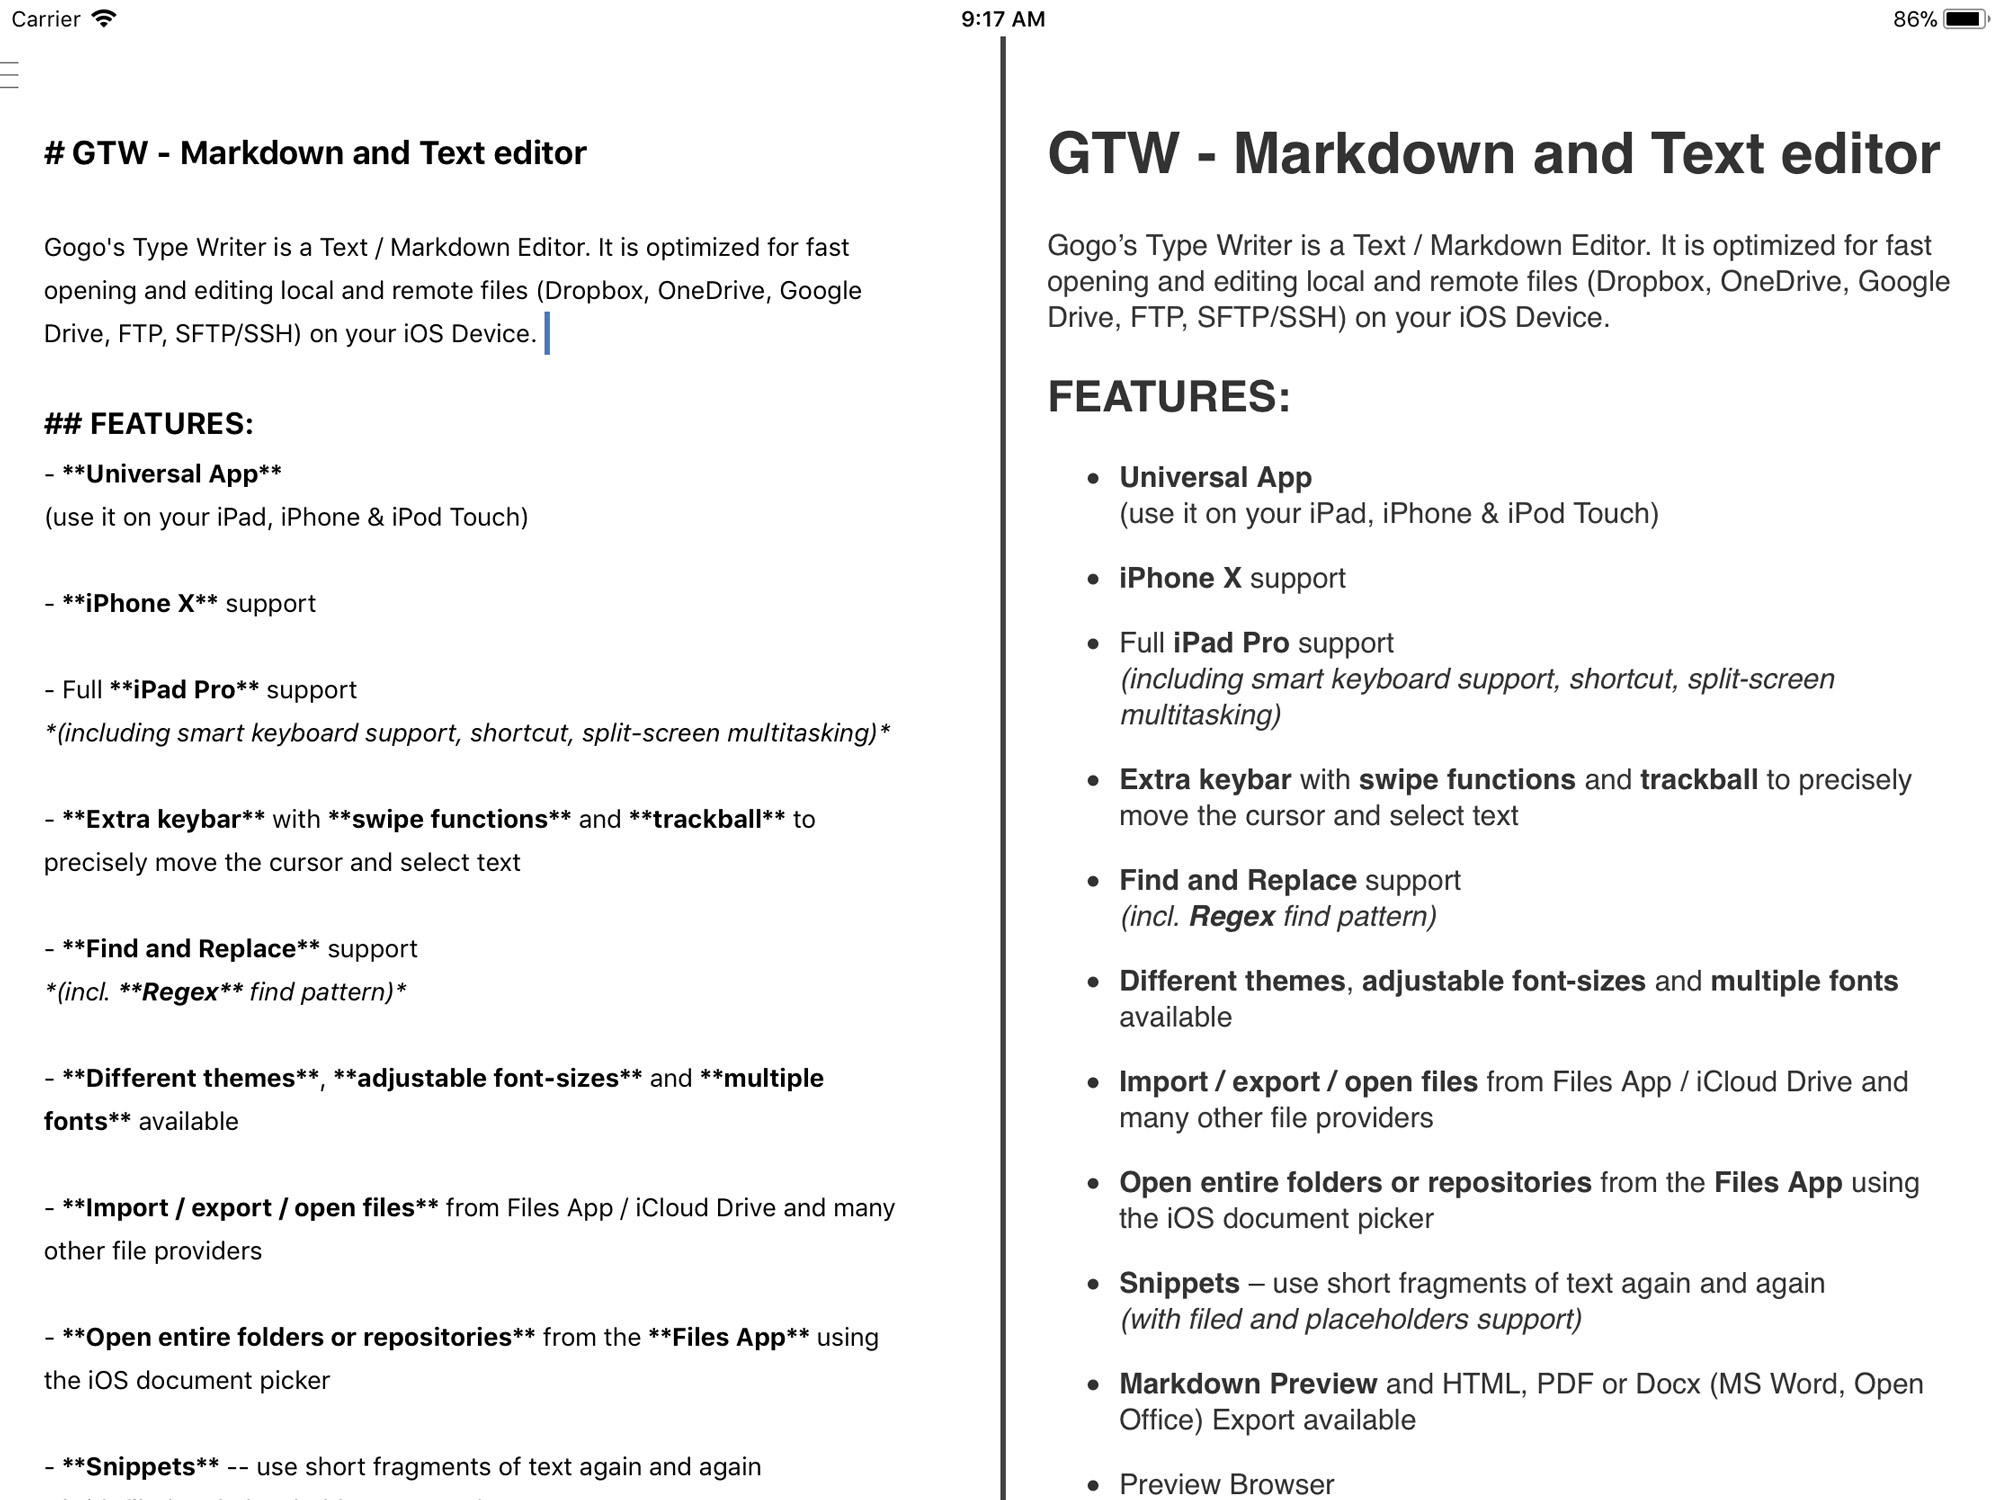 GTW - Markdown and Plain Text Editor for iOS